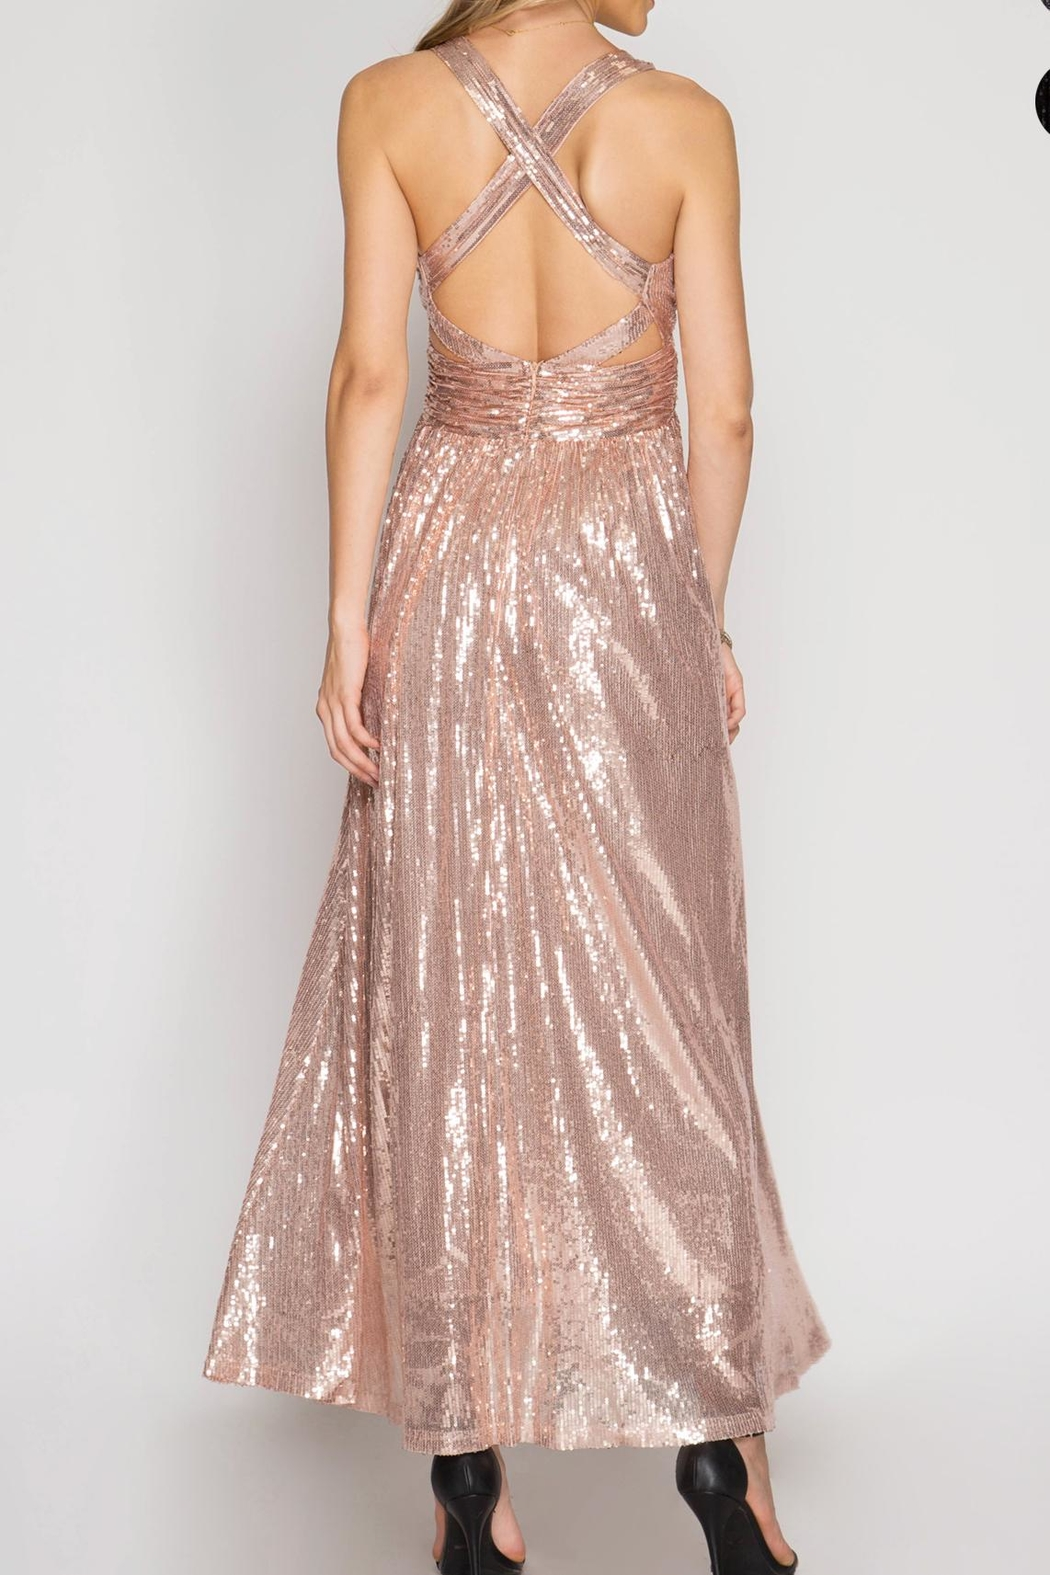 She + Sky Angelina Sequin Dress - Back Cropped Image